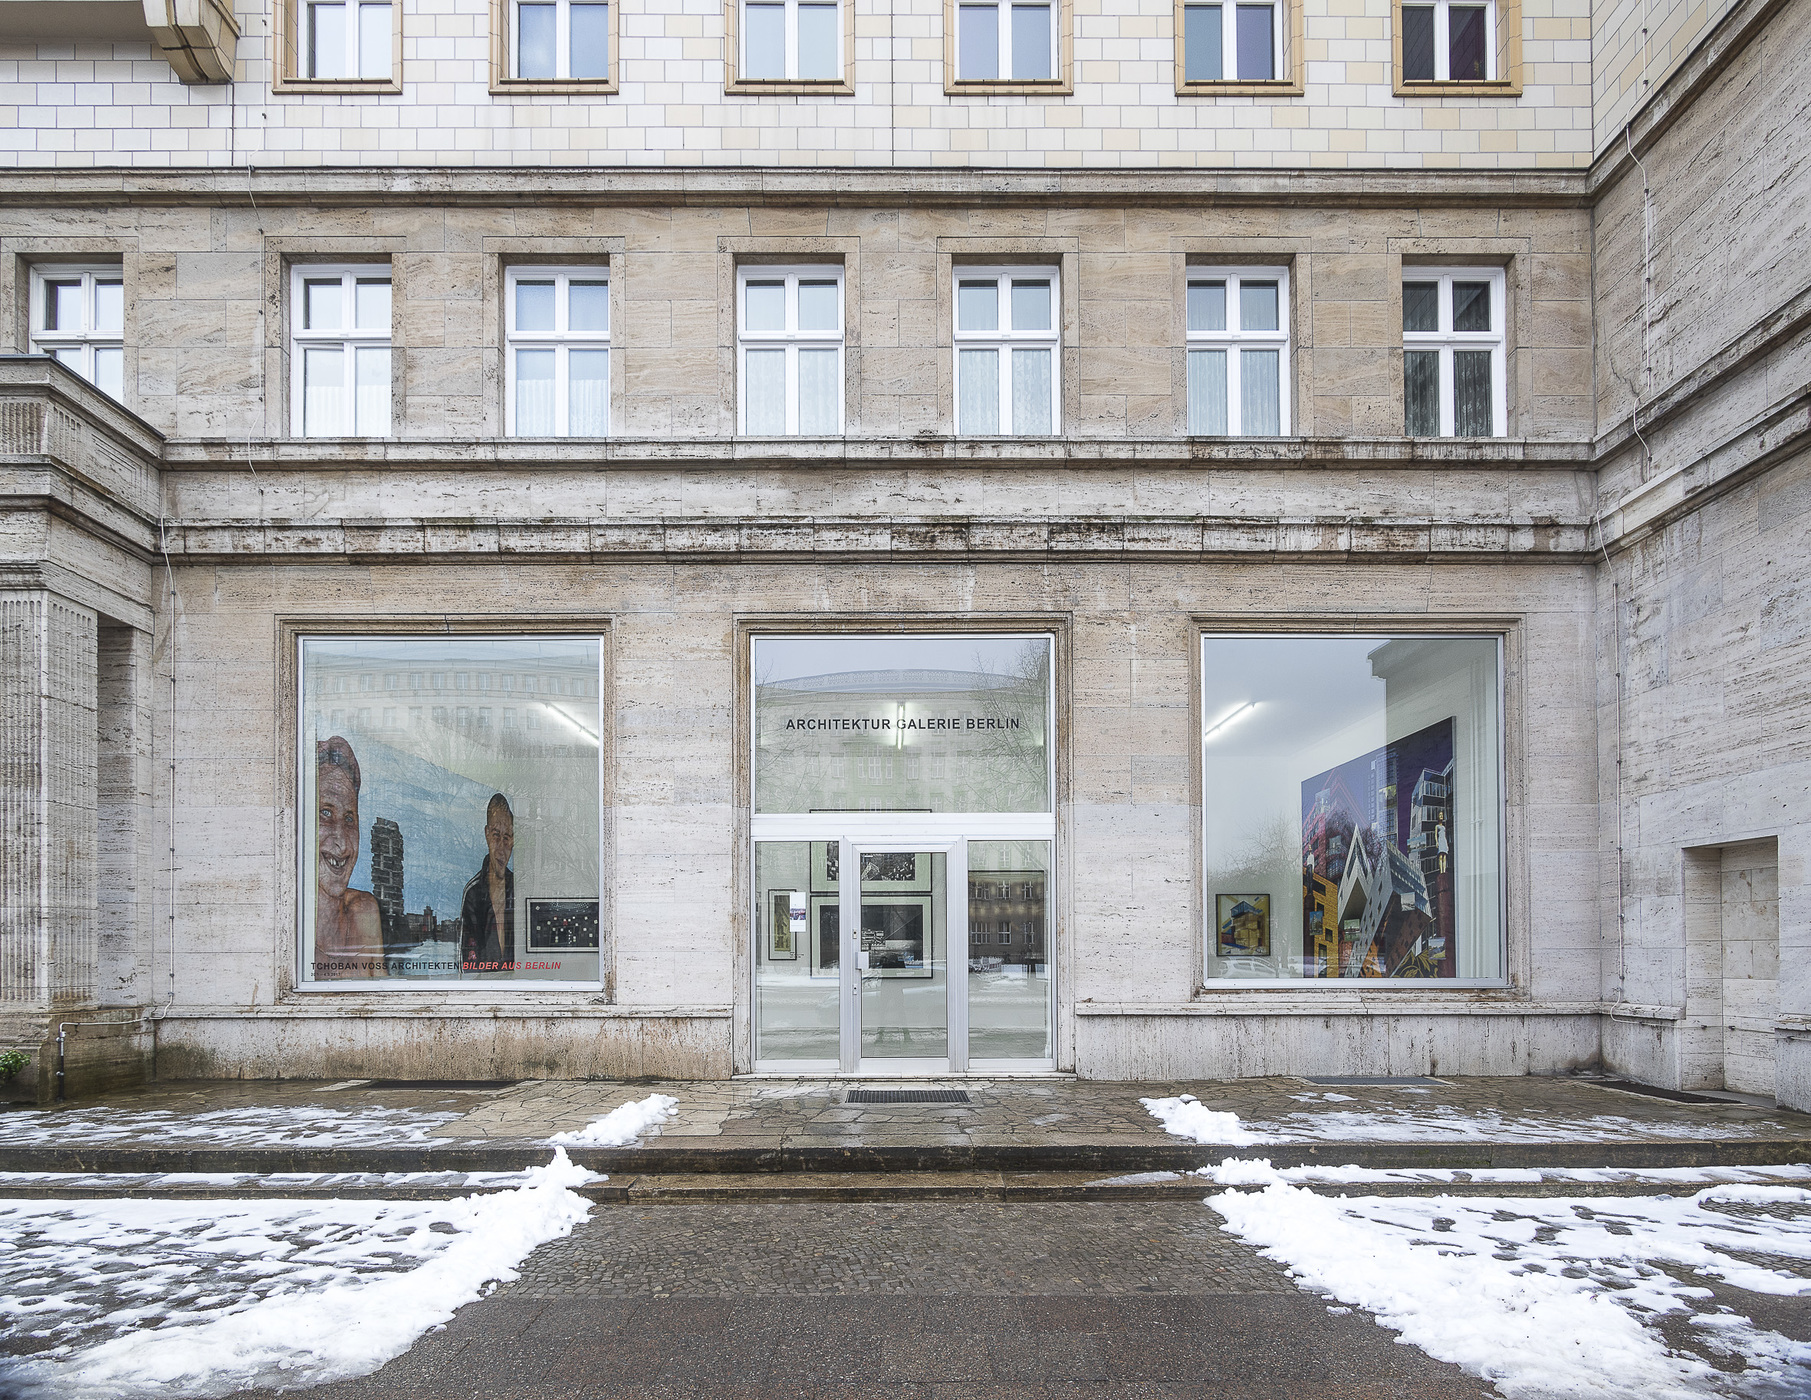 recent drawings and openings Architektur Galerie Berlin January 2017